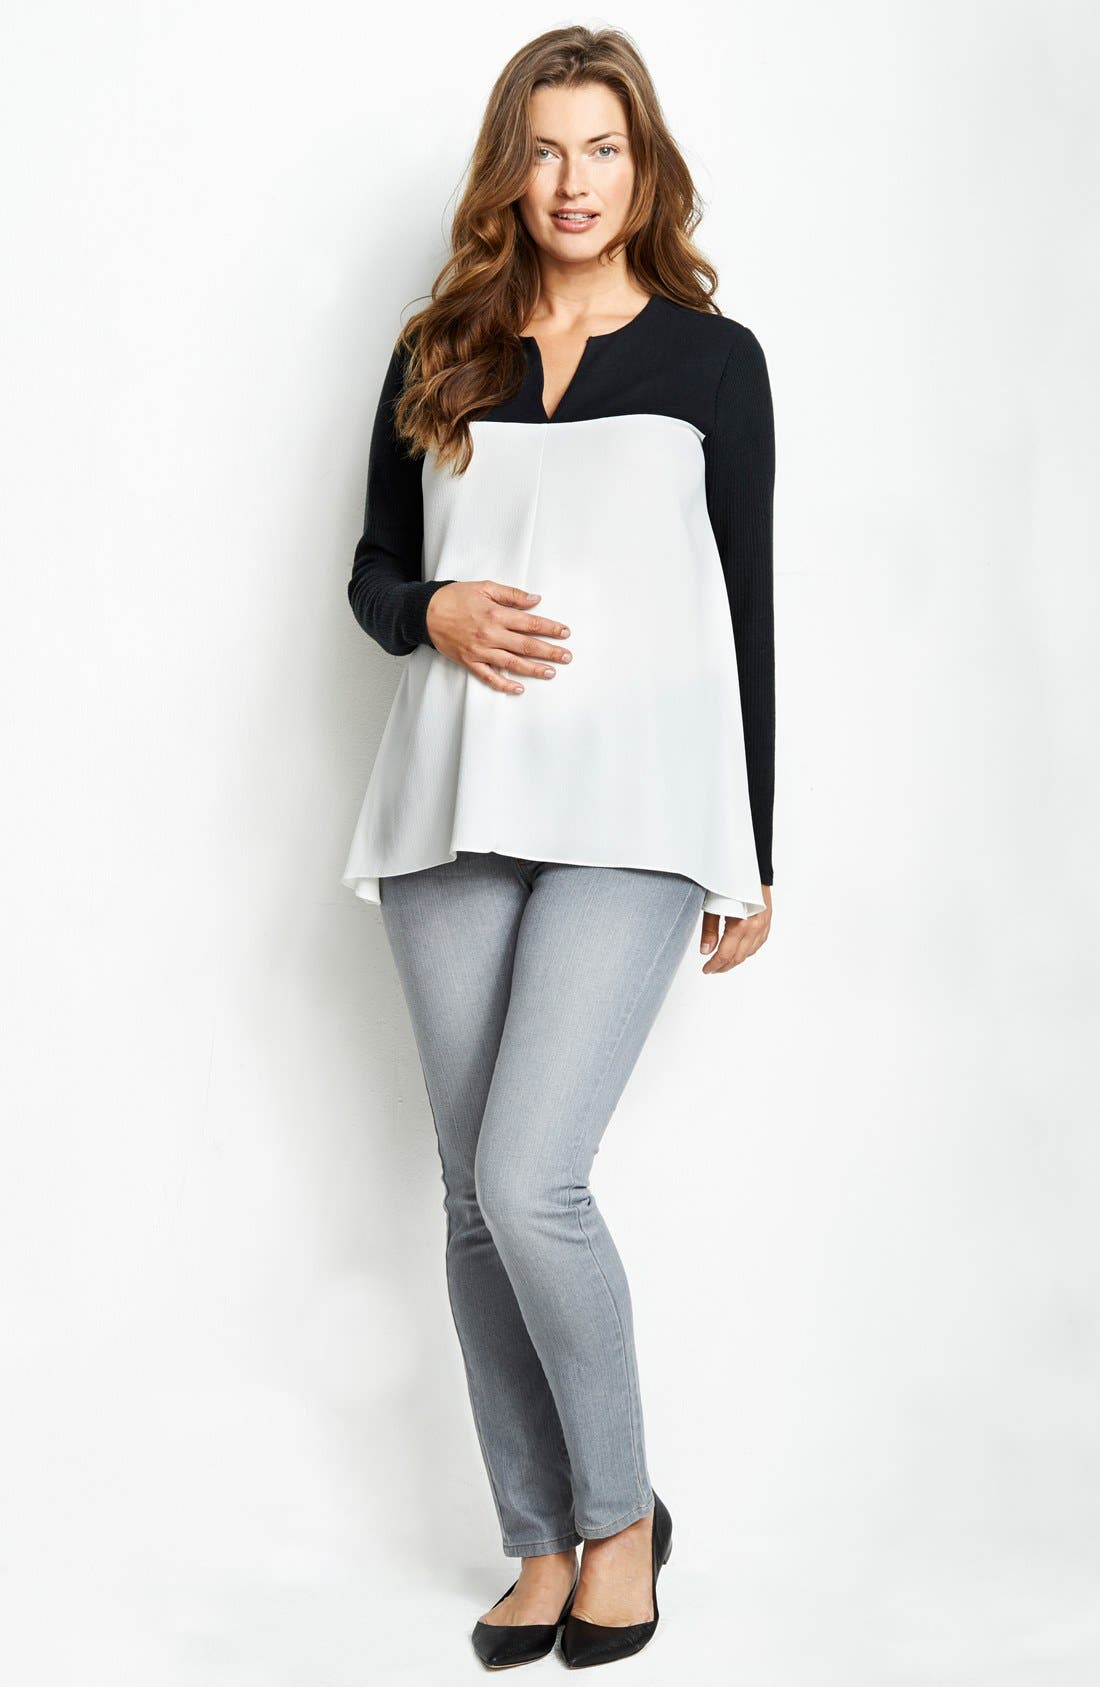 Baby Doll Maternity Top,                         Main,                         color, Black/ White